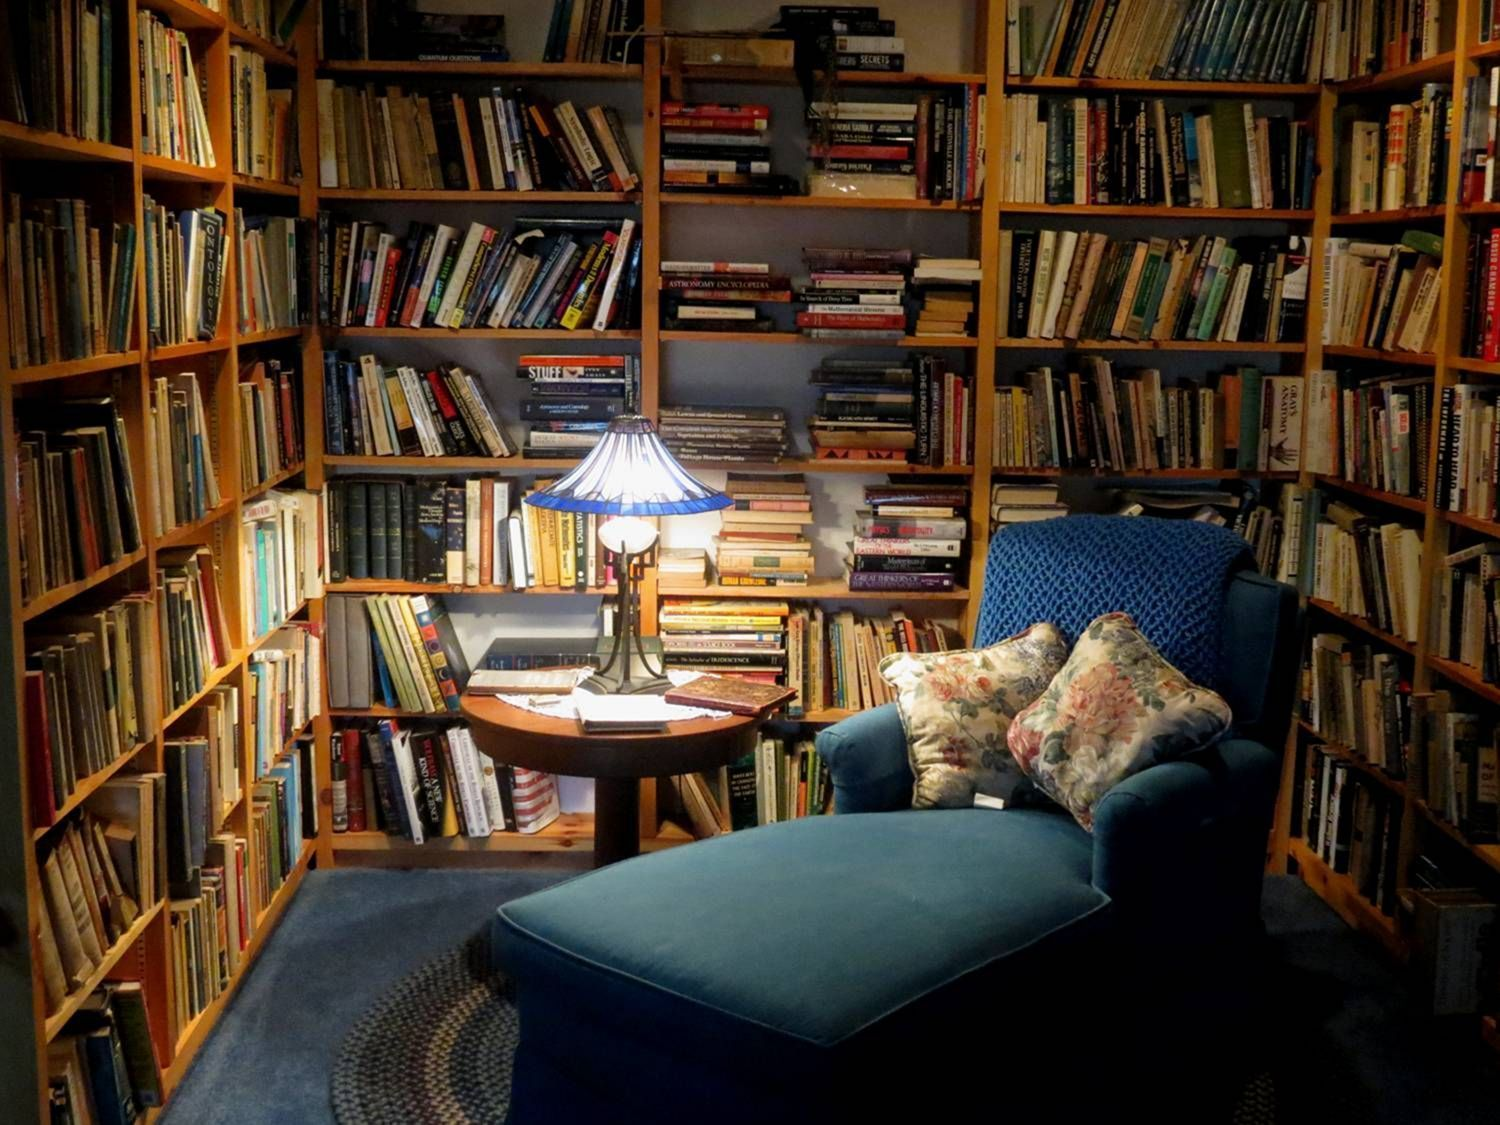 25 Cozy Small Home Library Design Ideas That Will Blow Your Mind Home Library Rooms Small Home Libraries Home Library Design